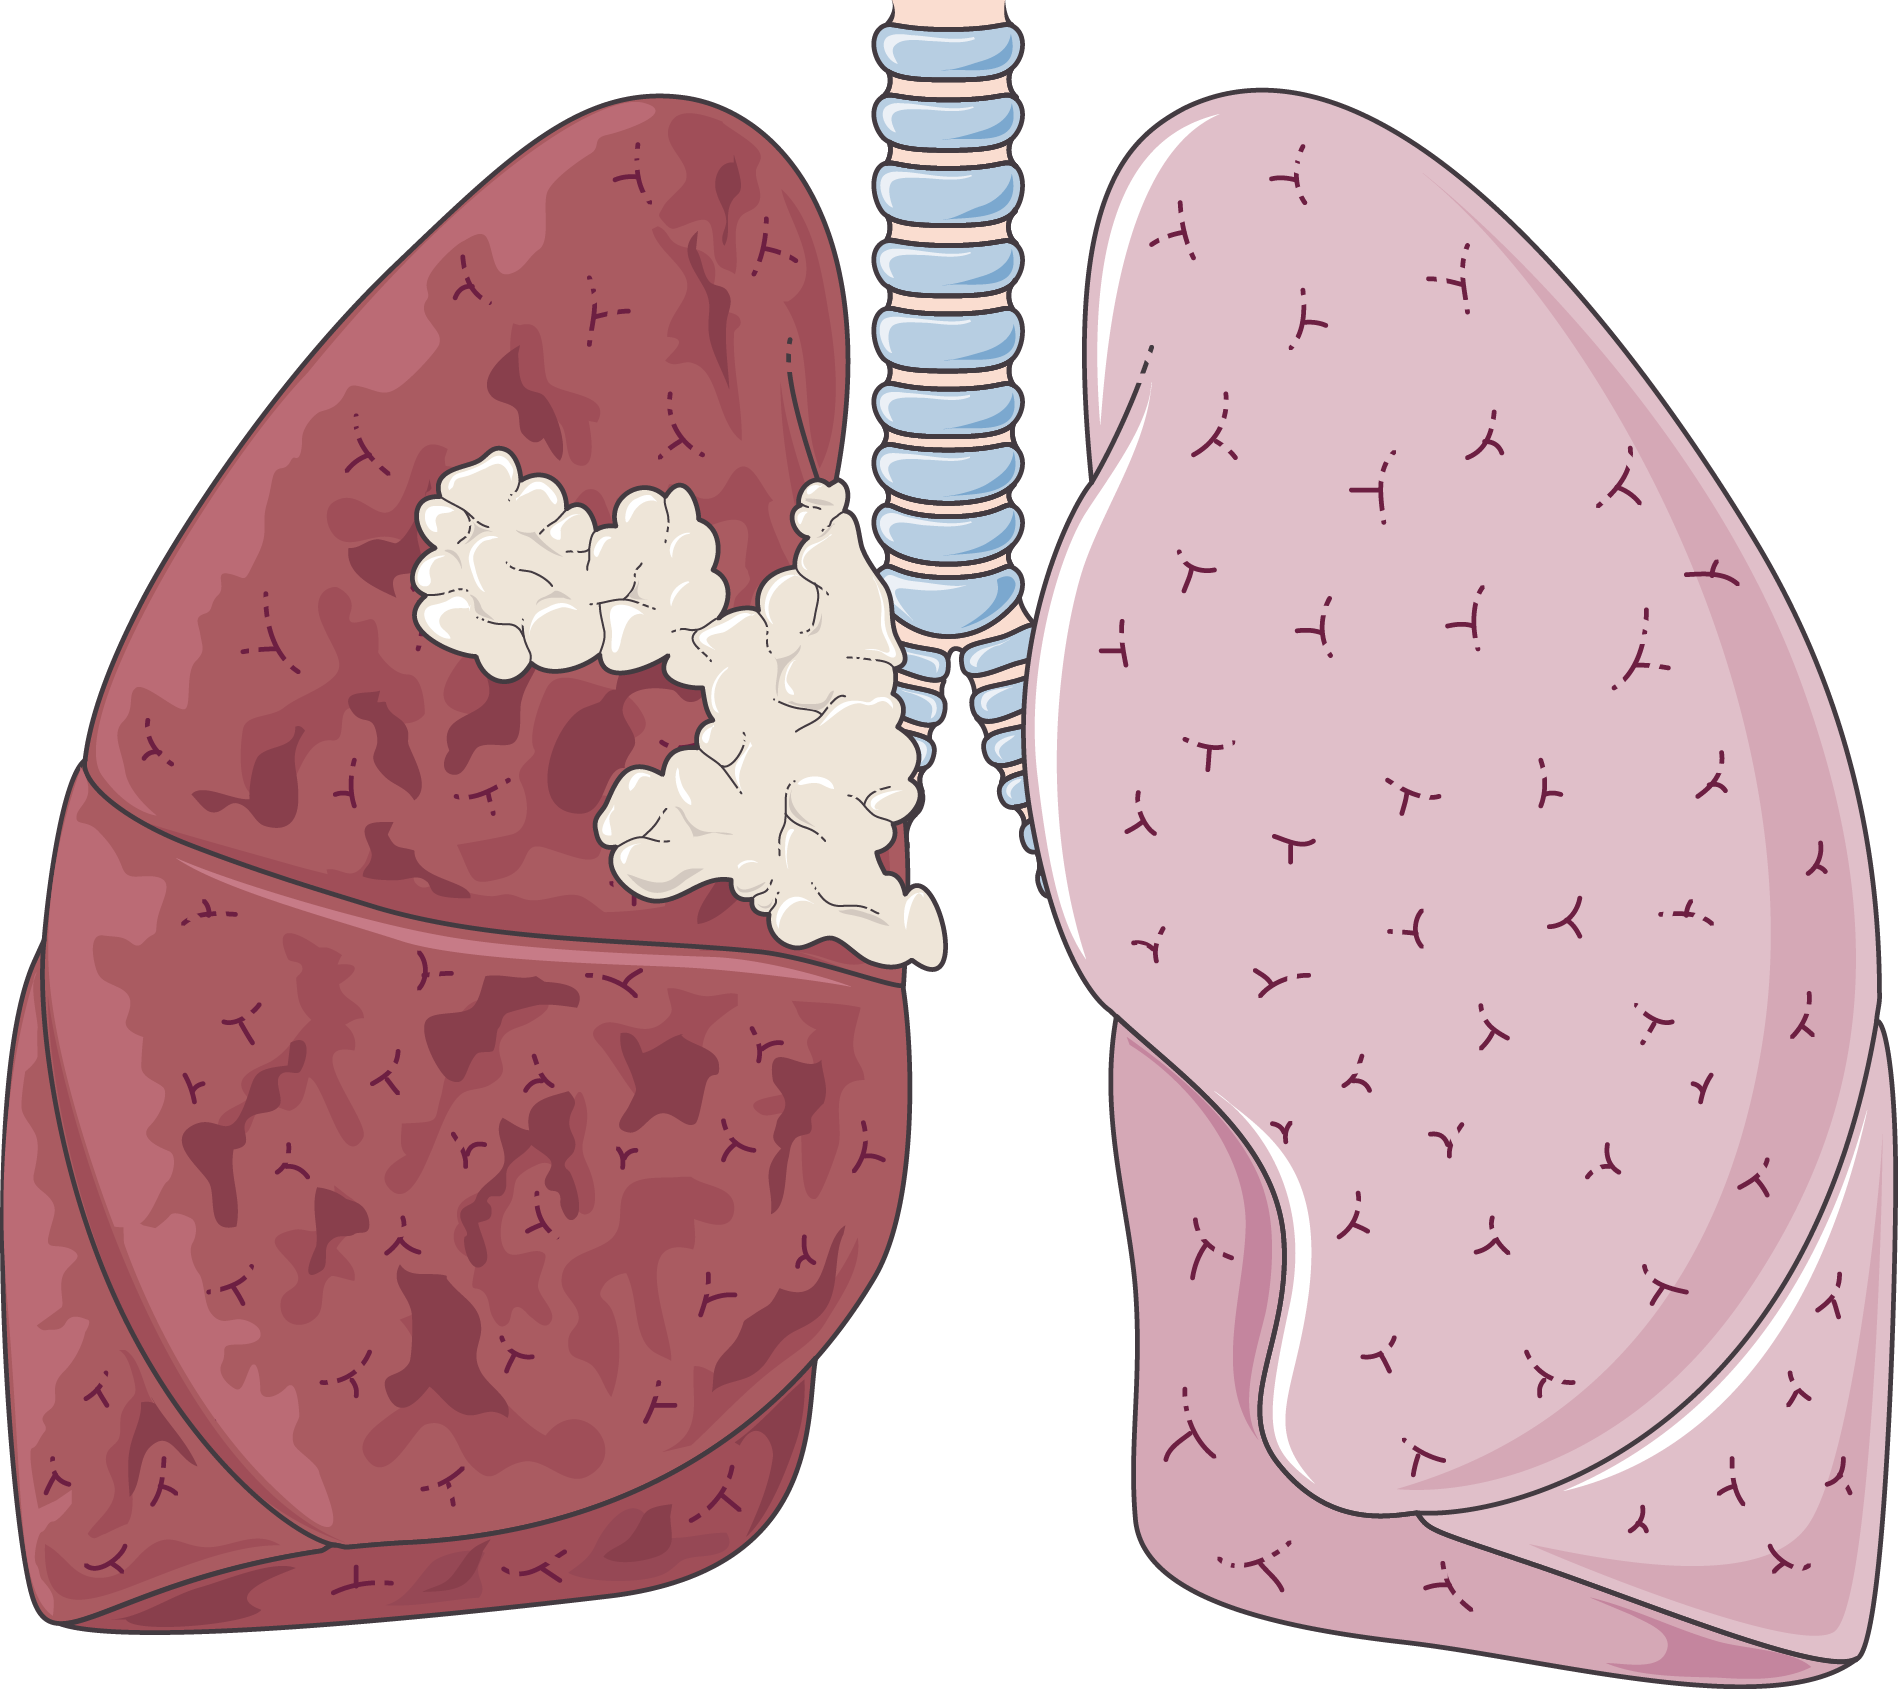 Lung cancer - Servier Medical Art - 3000 free medical images